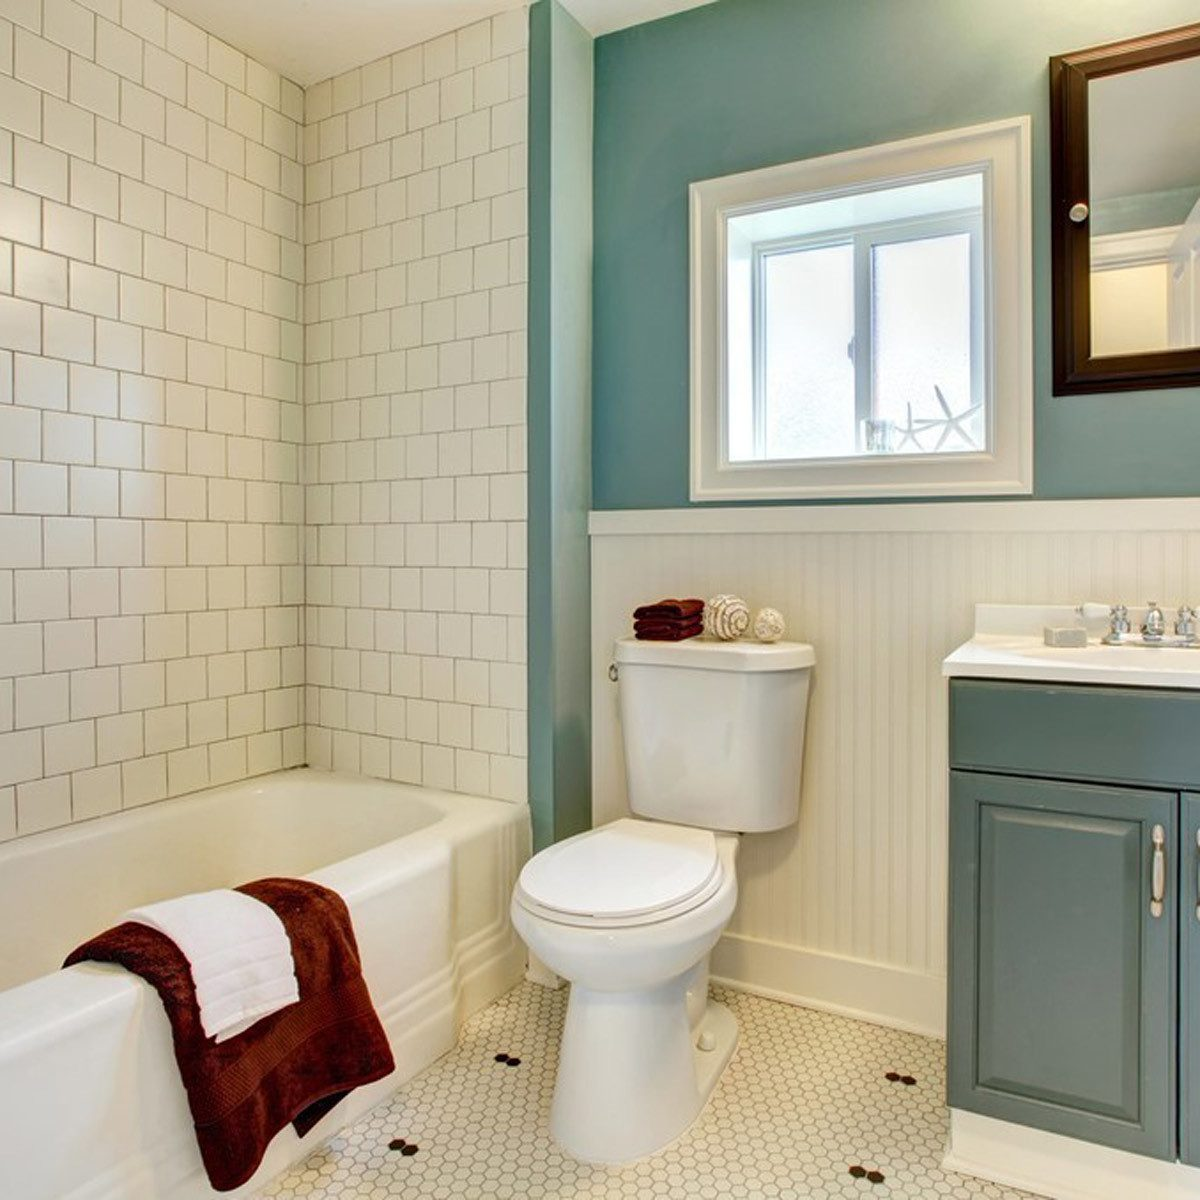 Cost of new bathroom installation - 13 Tile Tips For A Better Bathroom